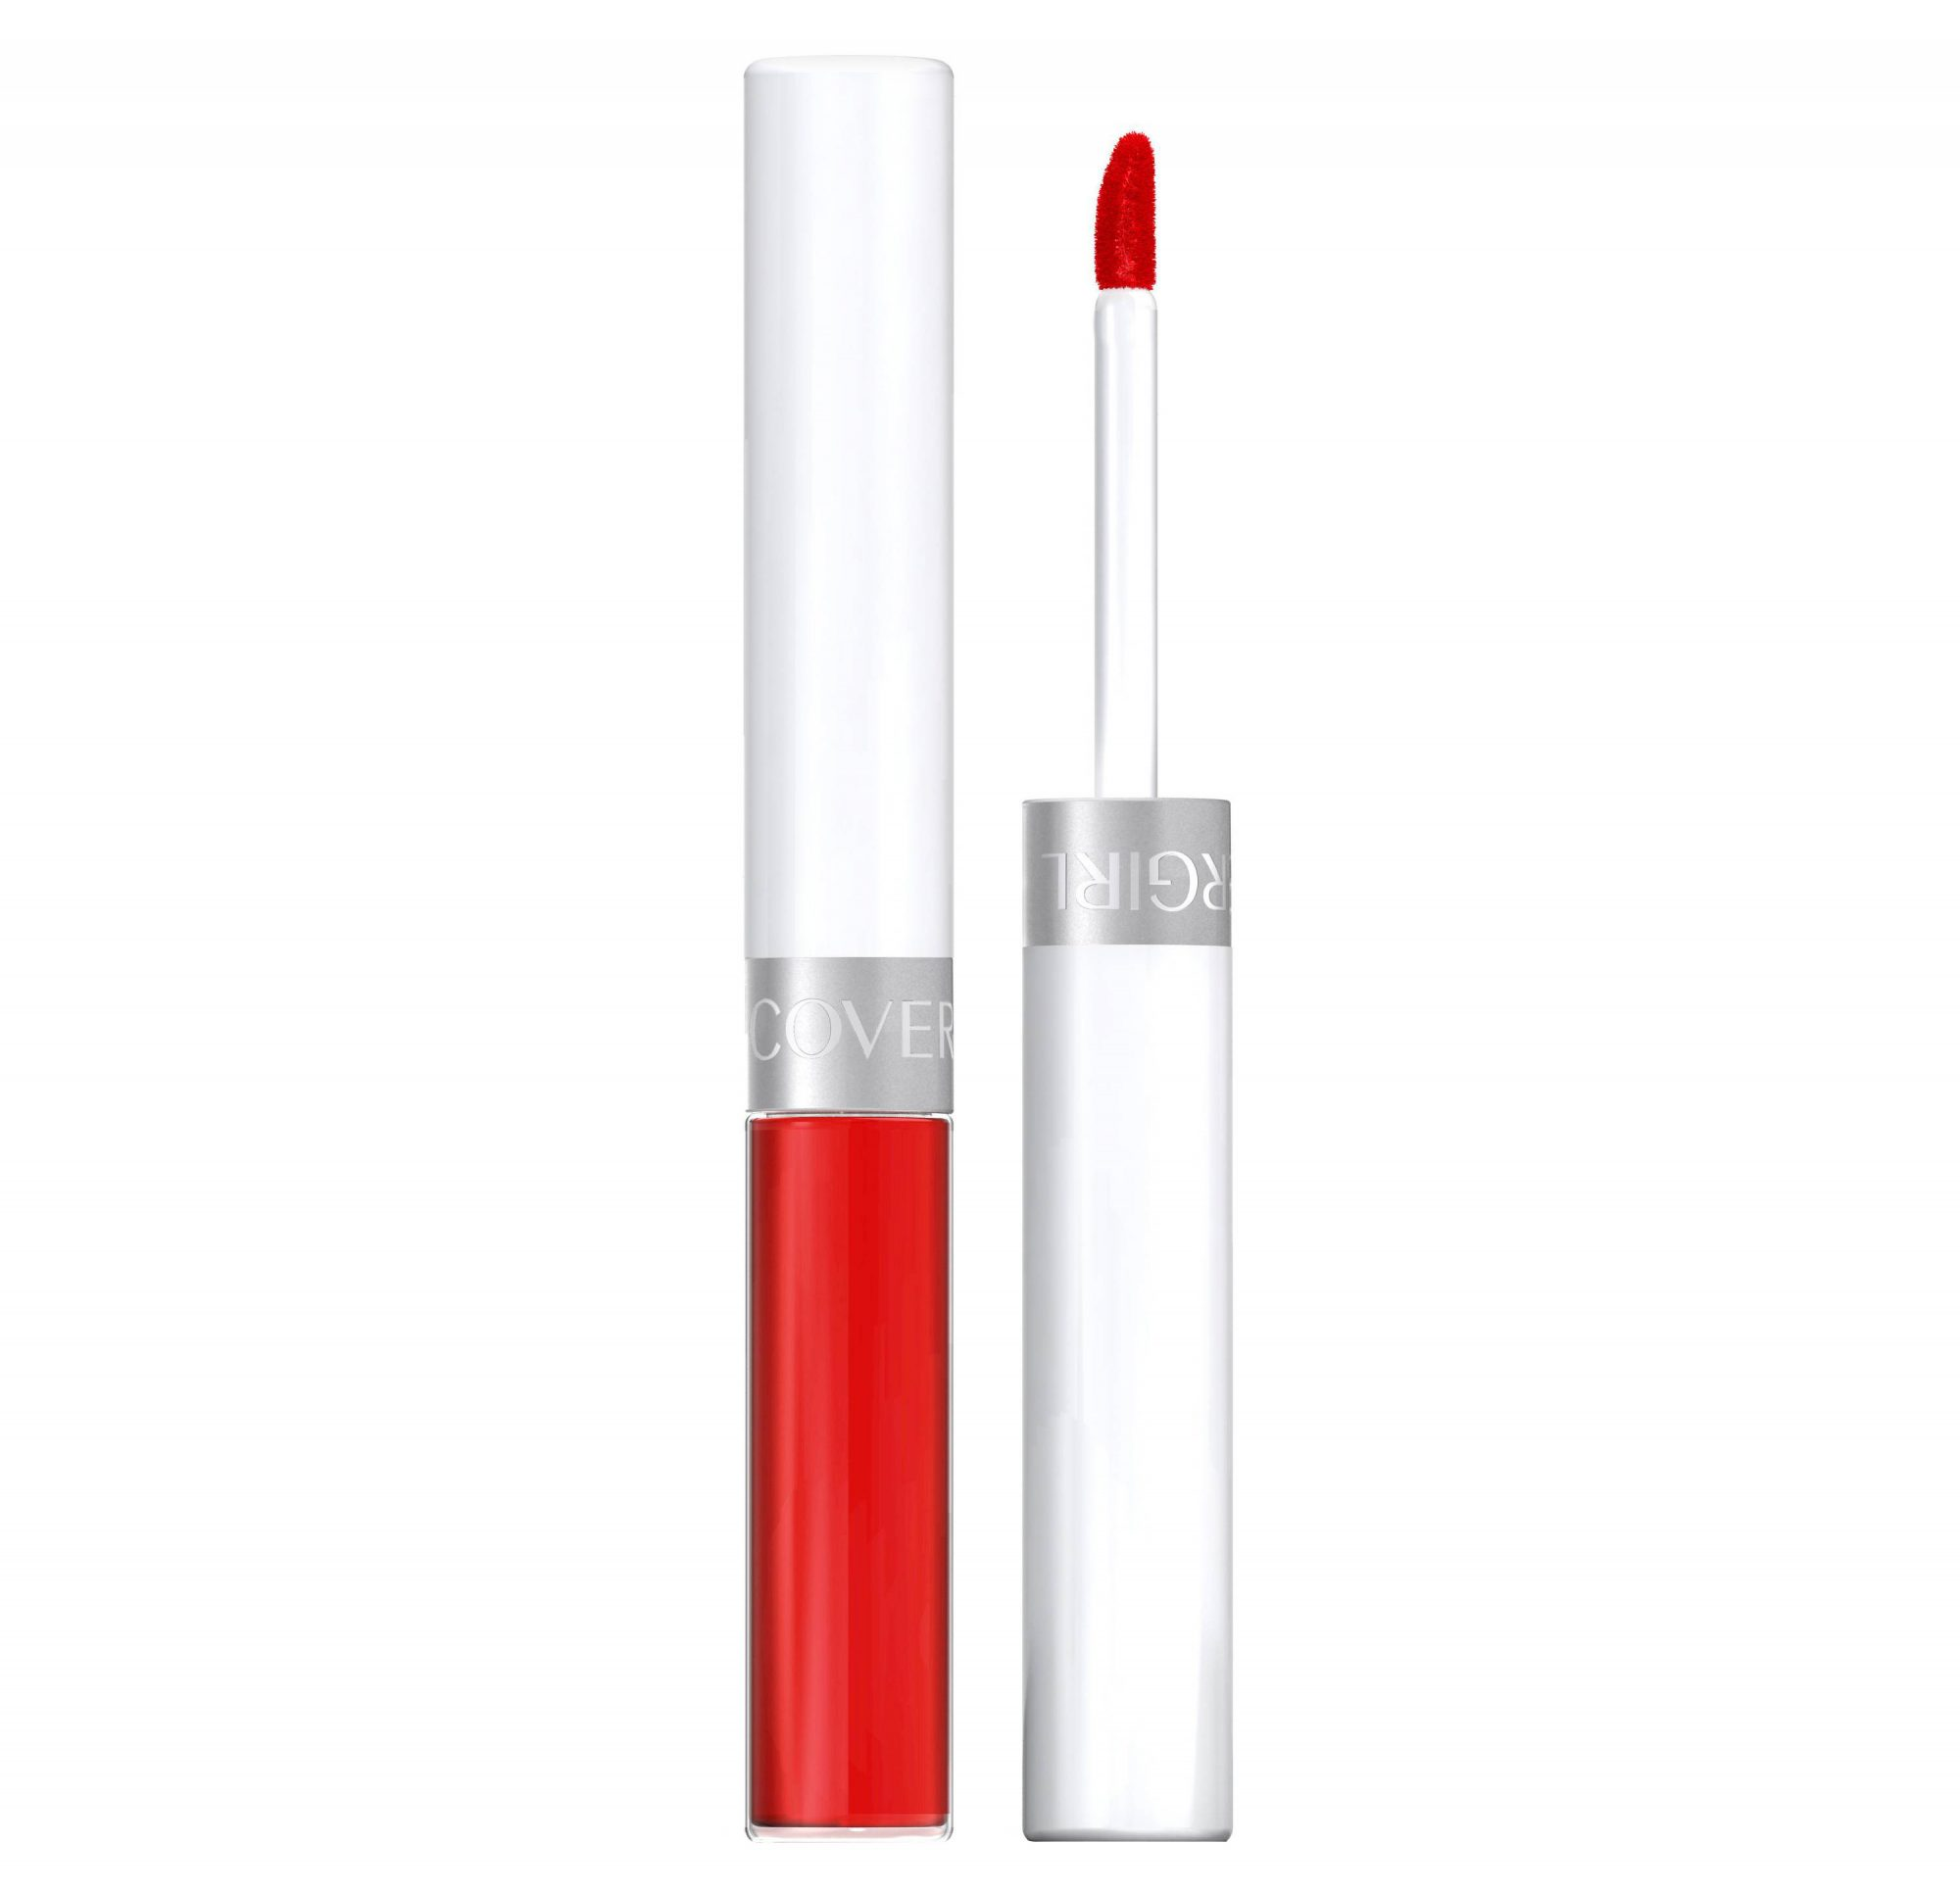 CoverGirl Outlast Lip Color in You're On Fire!